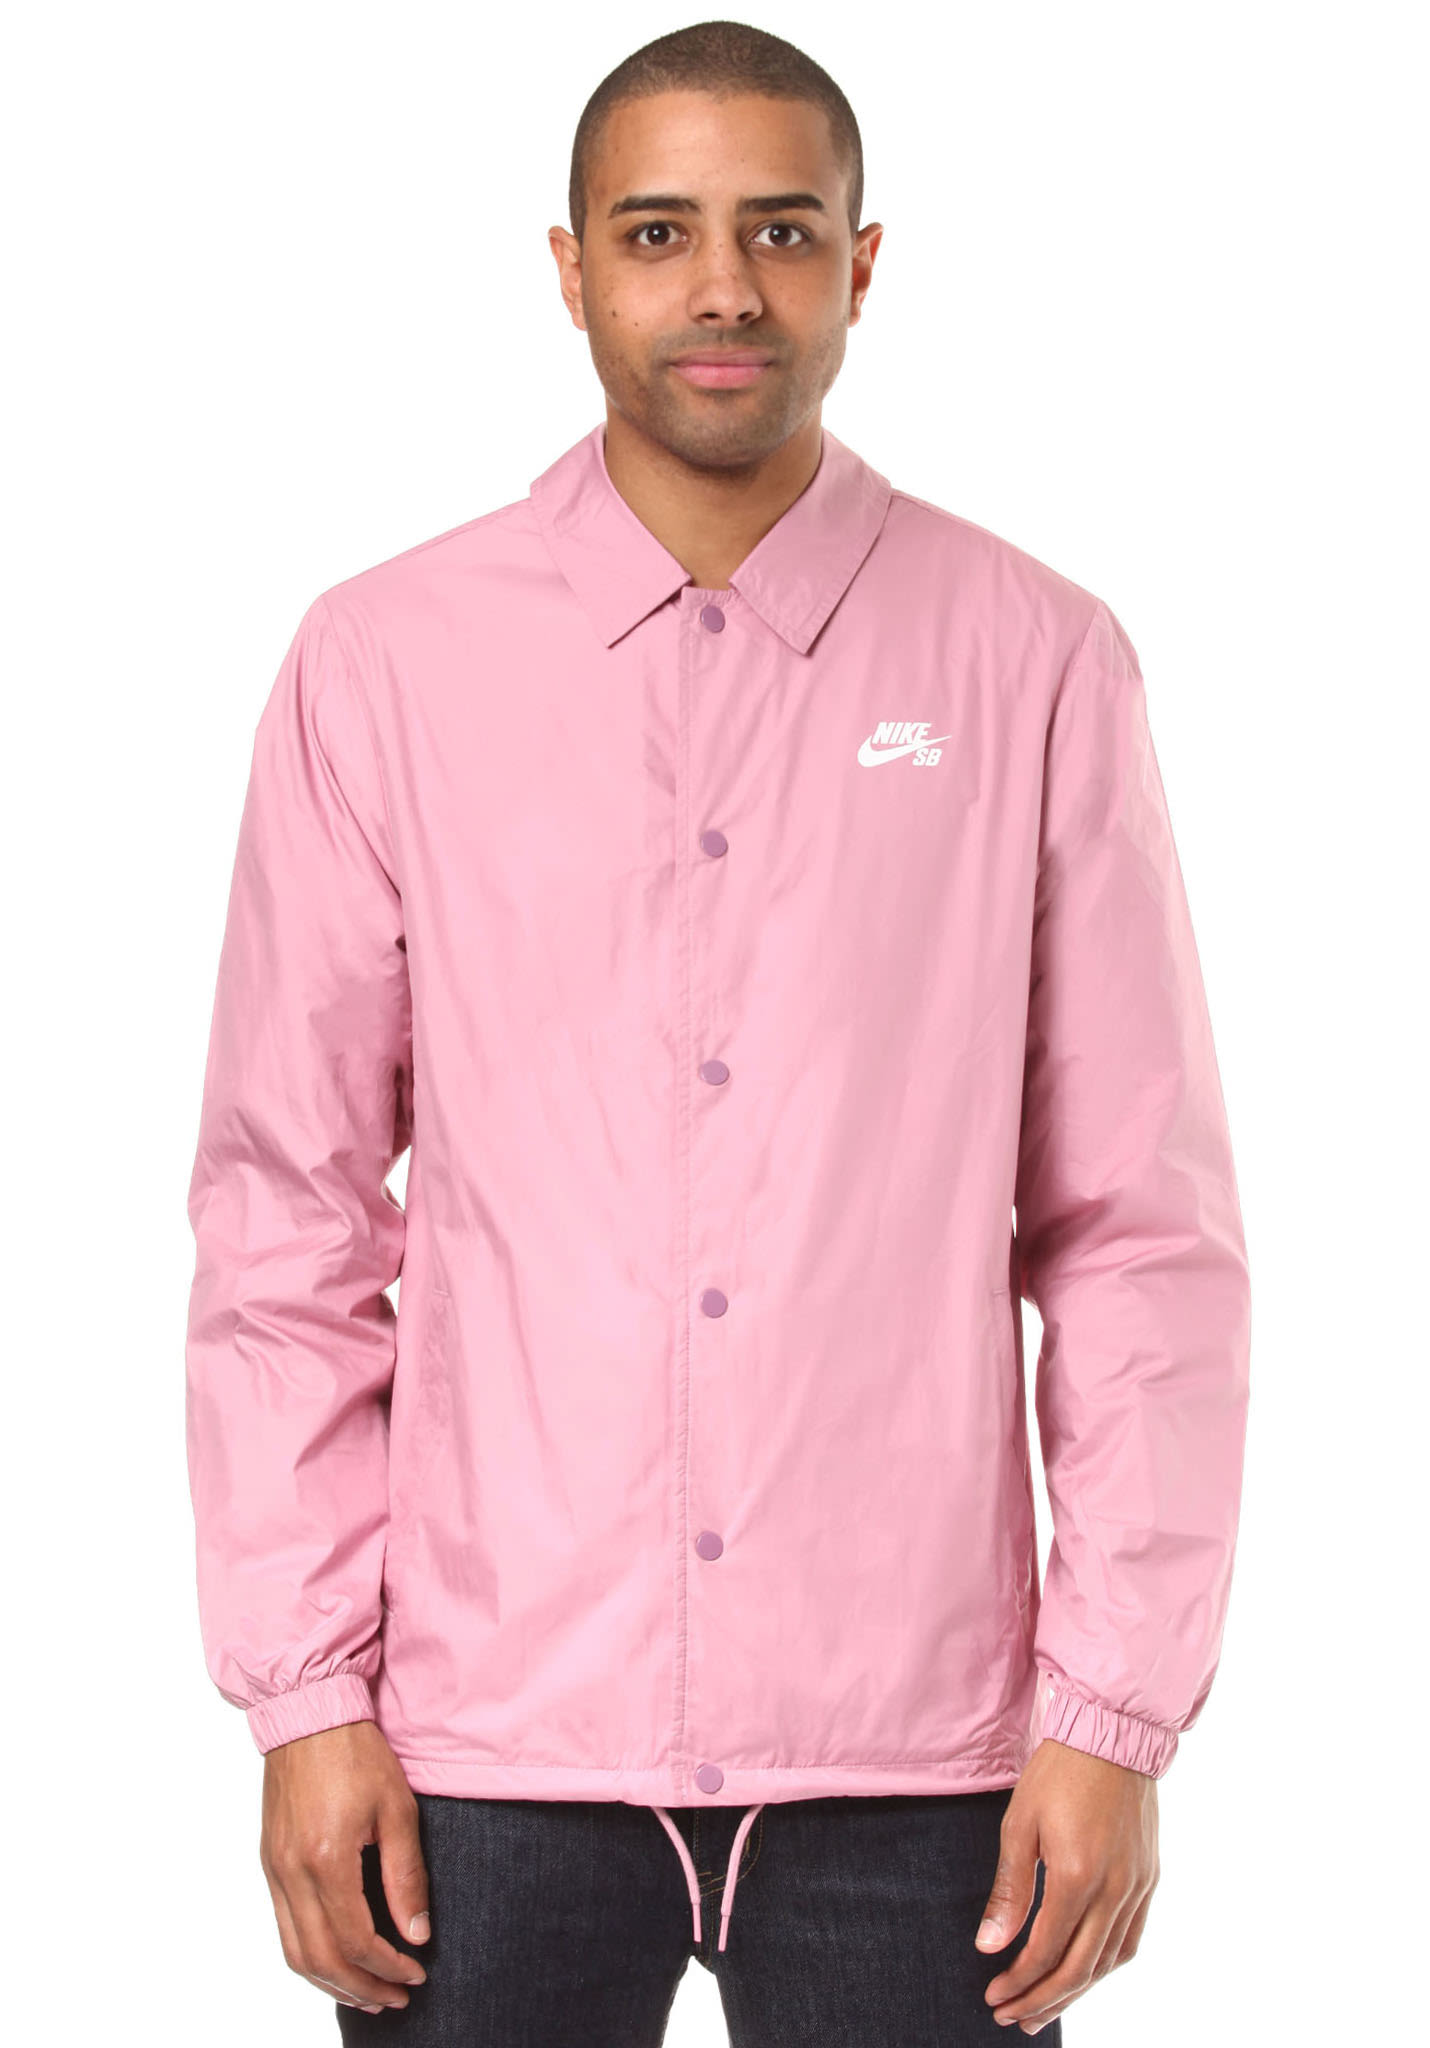 f95cef13767d NIKE SB Shield Coaches - Jacket for Men - Pink - Planet Sports